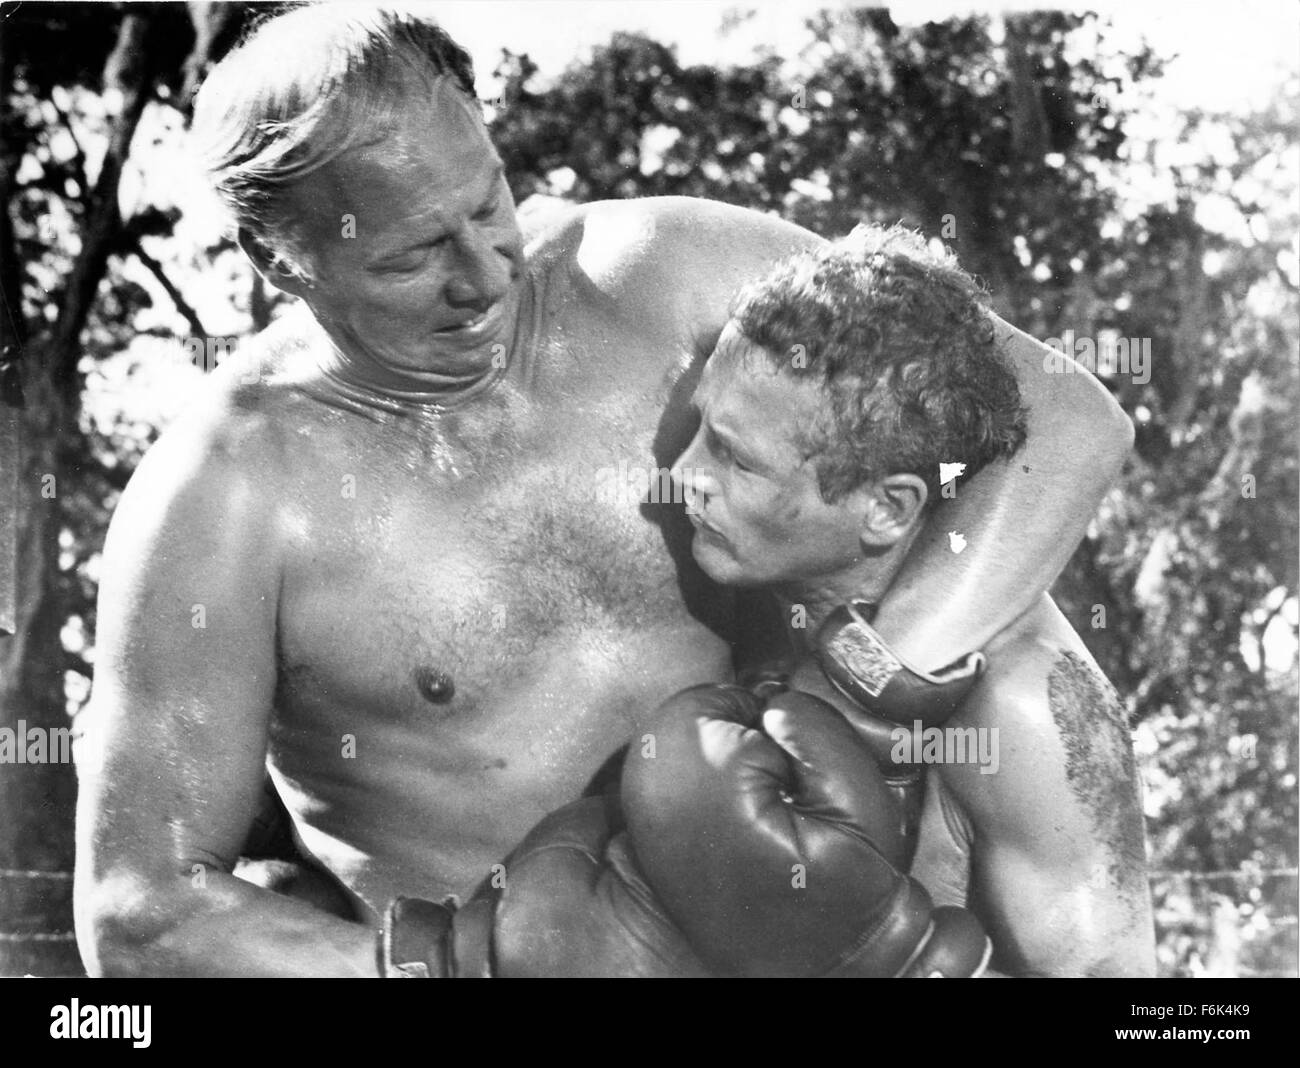 RELEASE DATE: November 1, 1967. MOVIE TITLE: Cool Hand Luke. STUDIO: Jalem Productions. PLOT: Luke Jackson is a - Stock Image